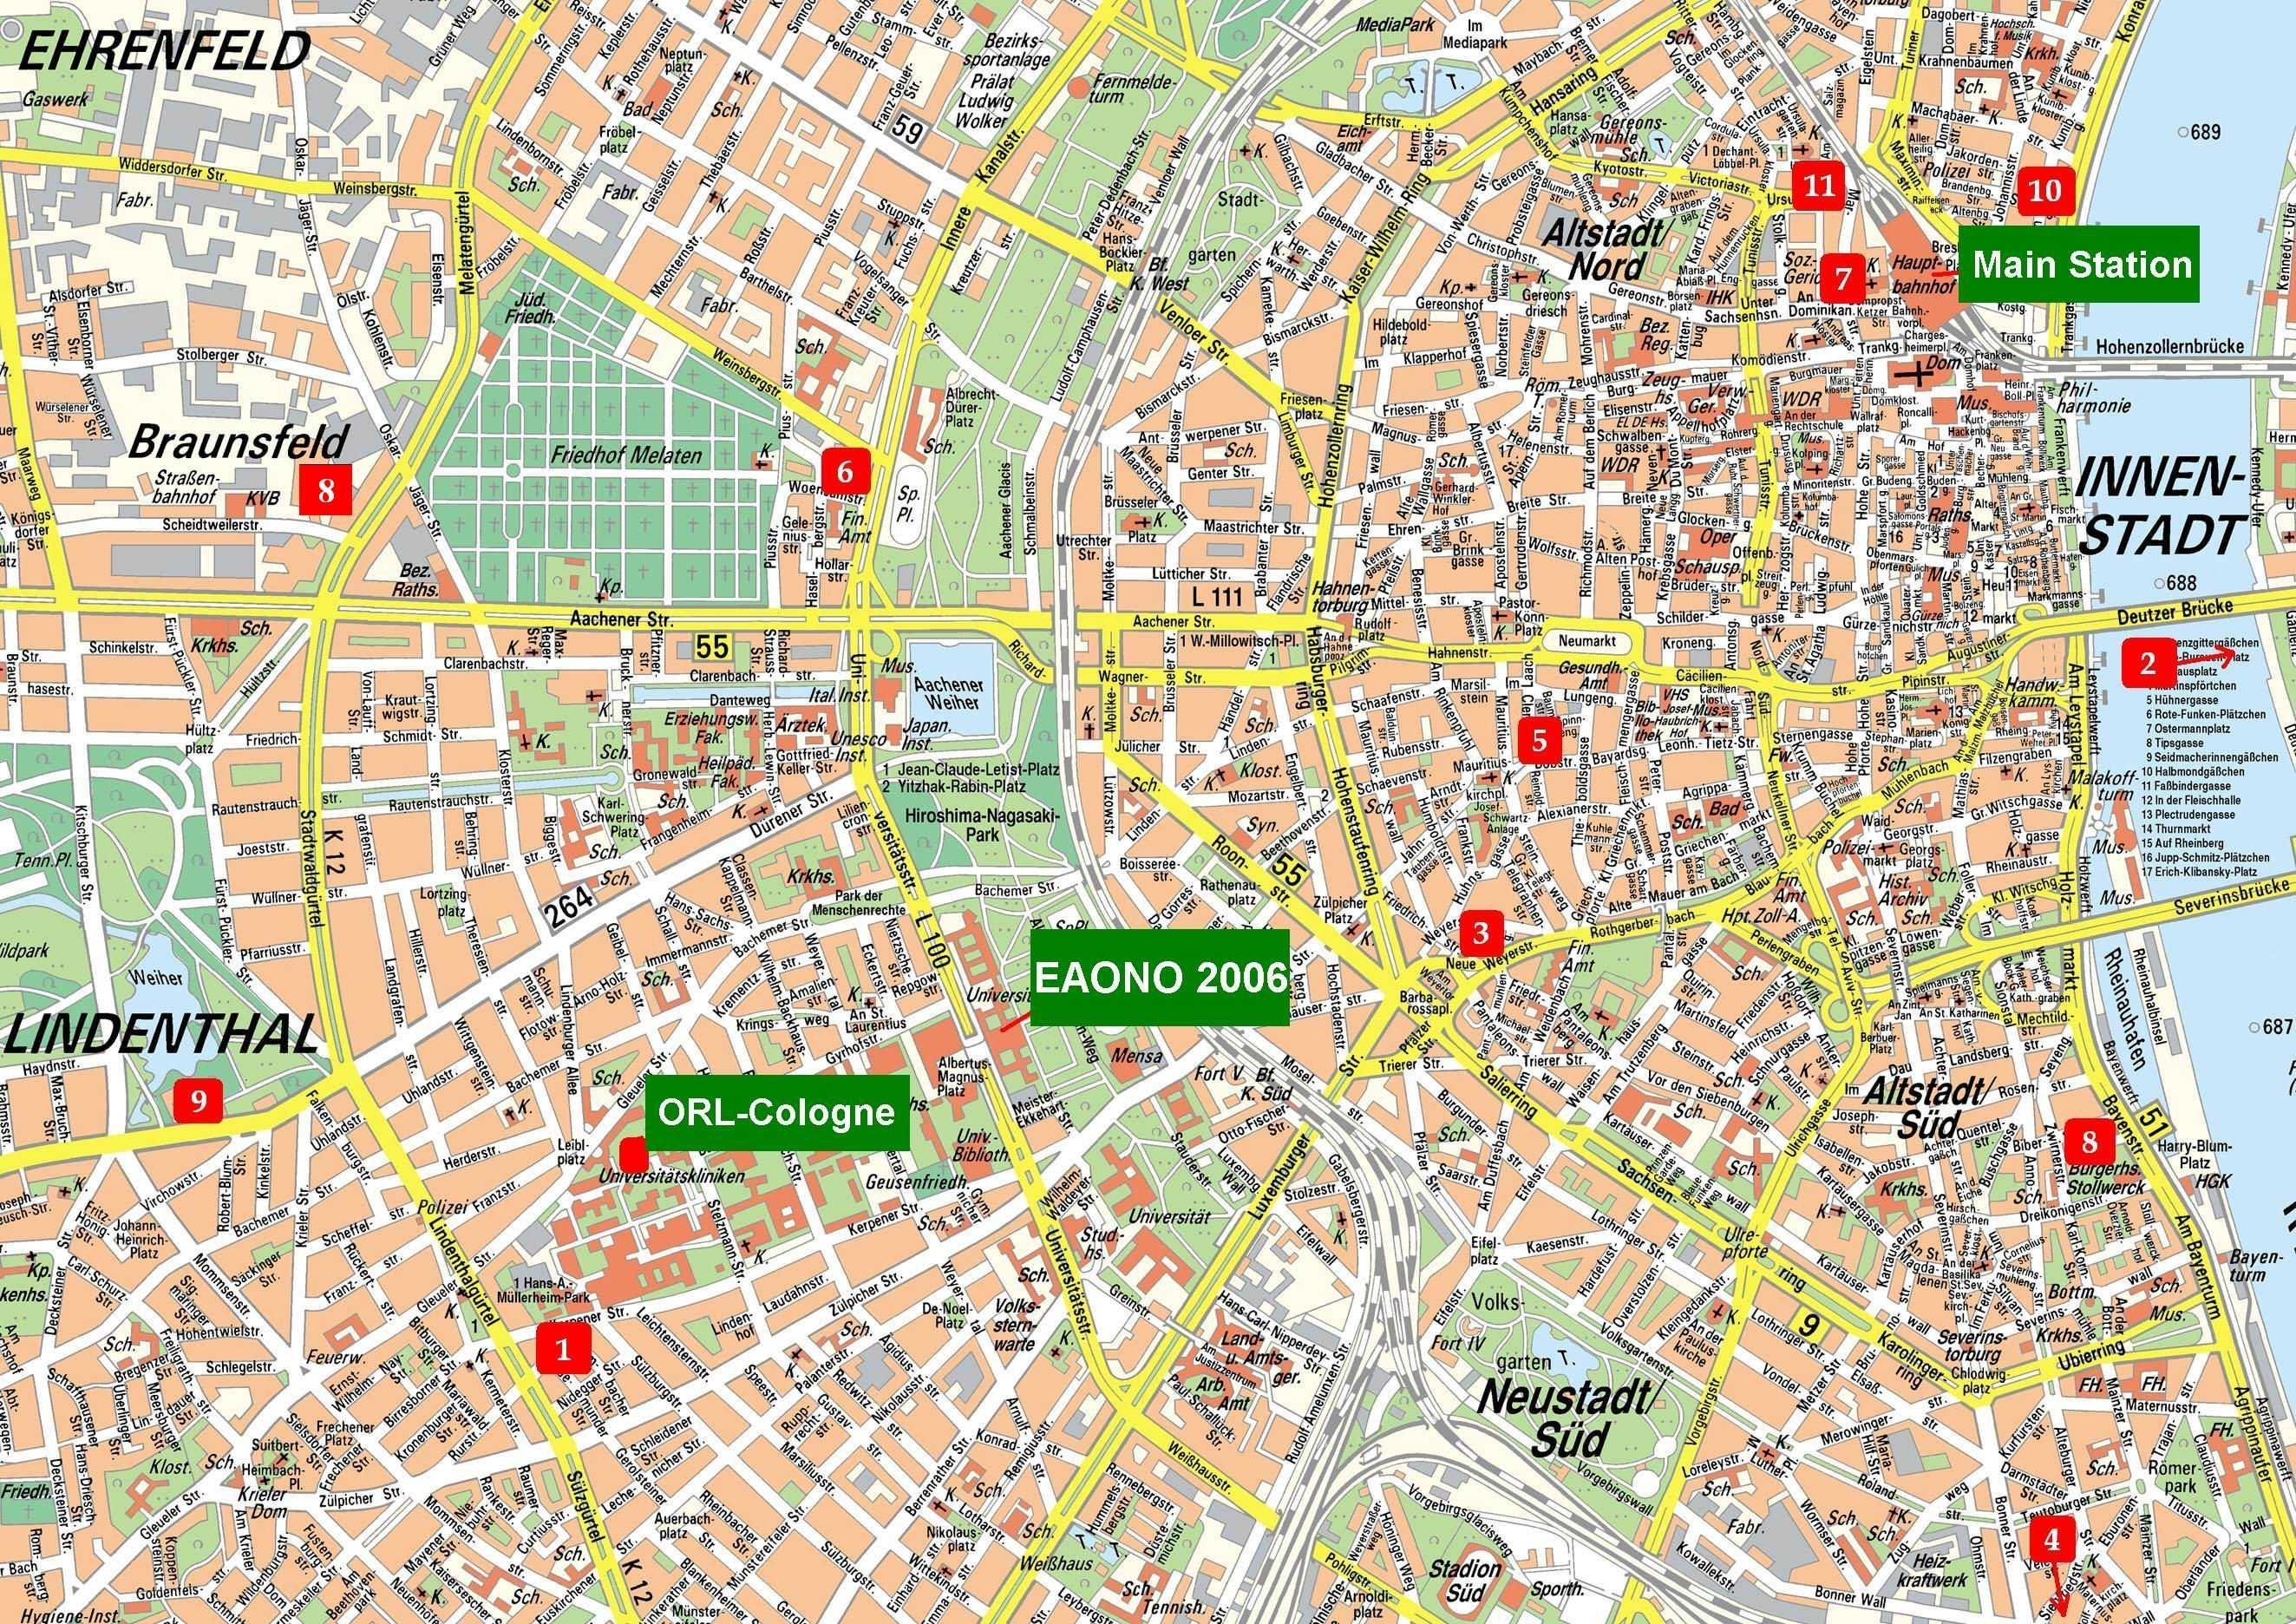 Large Cologne Maps For Free Download And Print   High-Resolution And with regard to Walking Map Of Cologne Germany